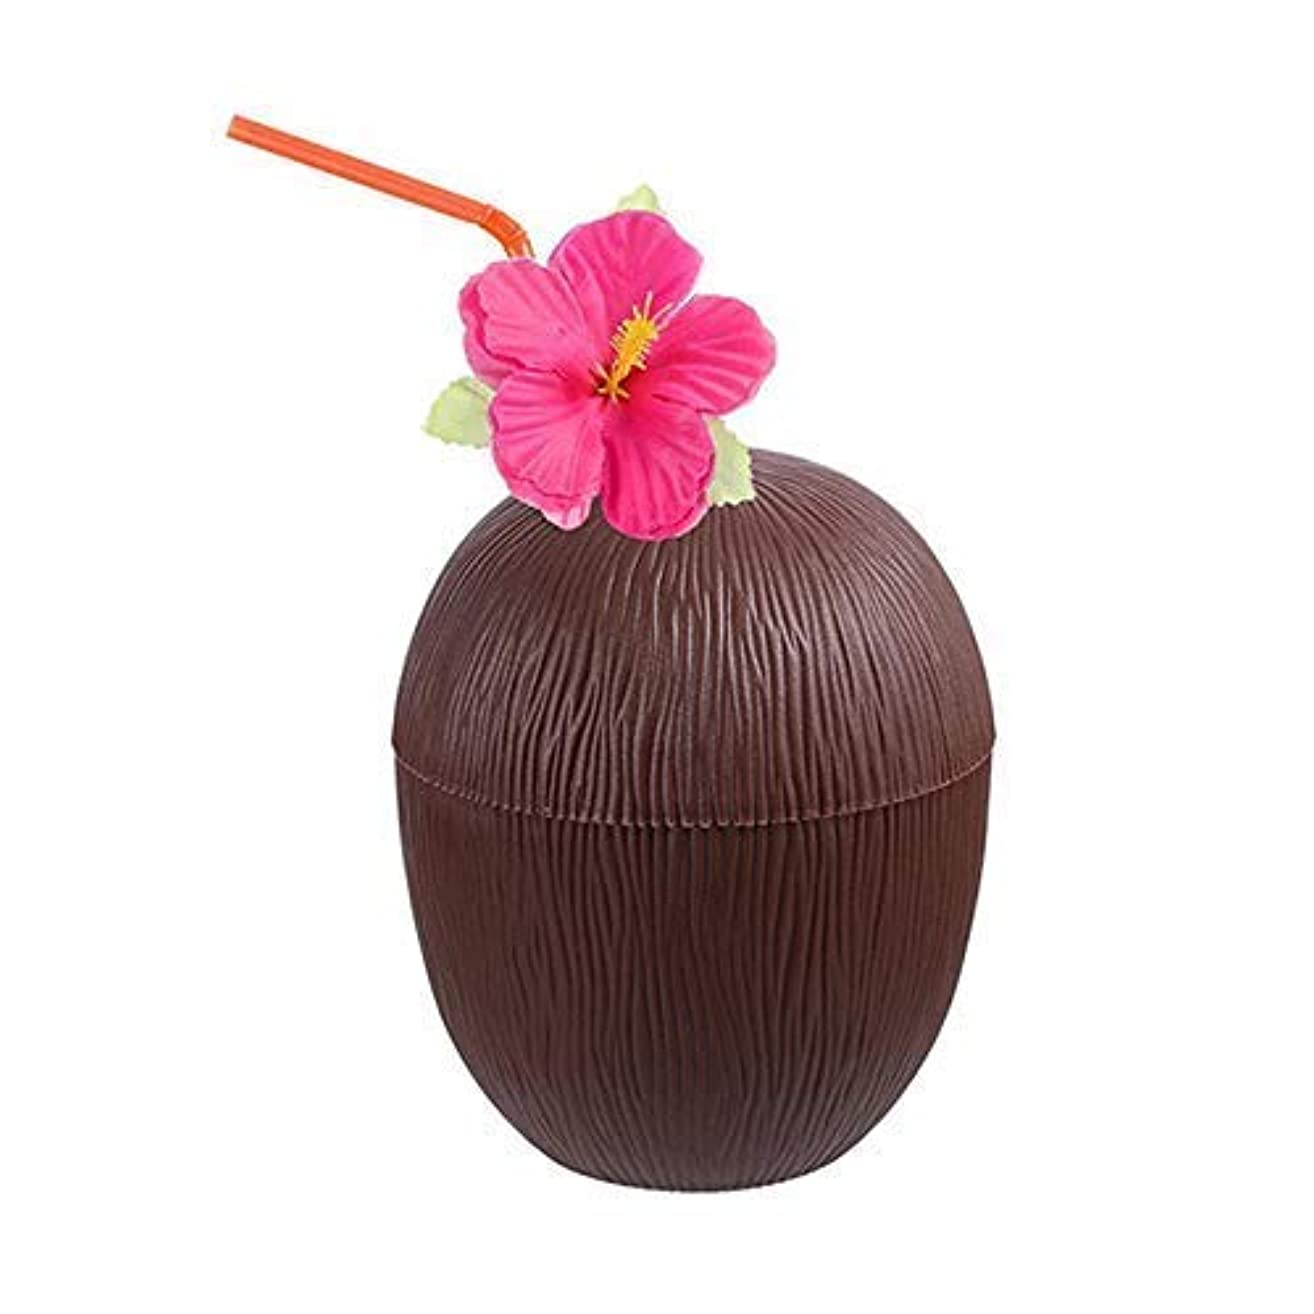 Womdee Hawaiian Coconut Cup, 1 Pieces with Flower Straws, Beach Theme Party Supplies Summer Activities Children's Adult Party Birthday Party Fun Drink Cup